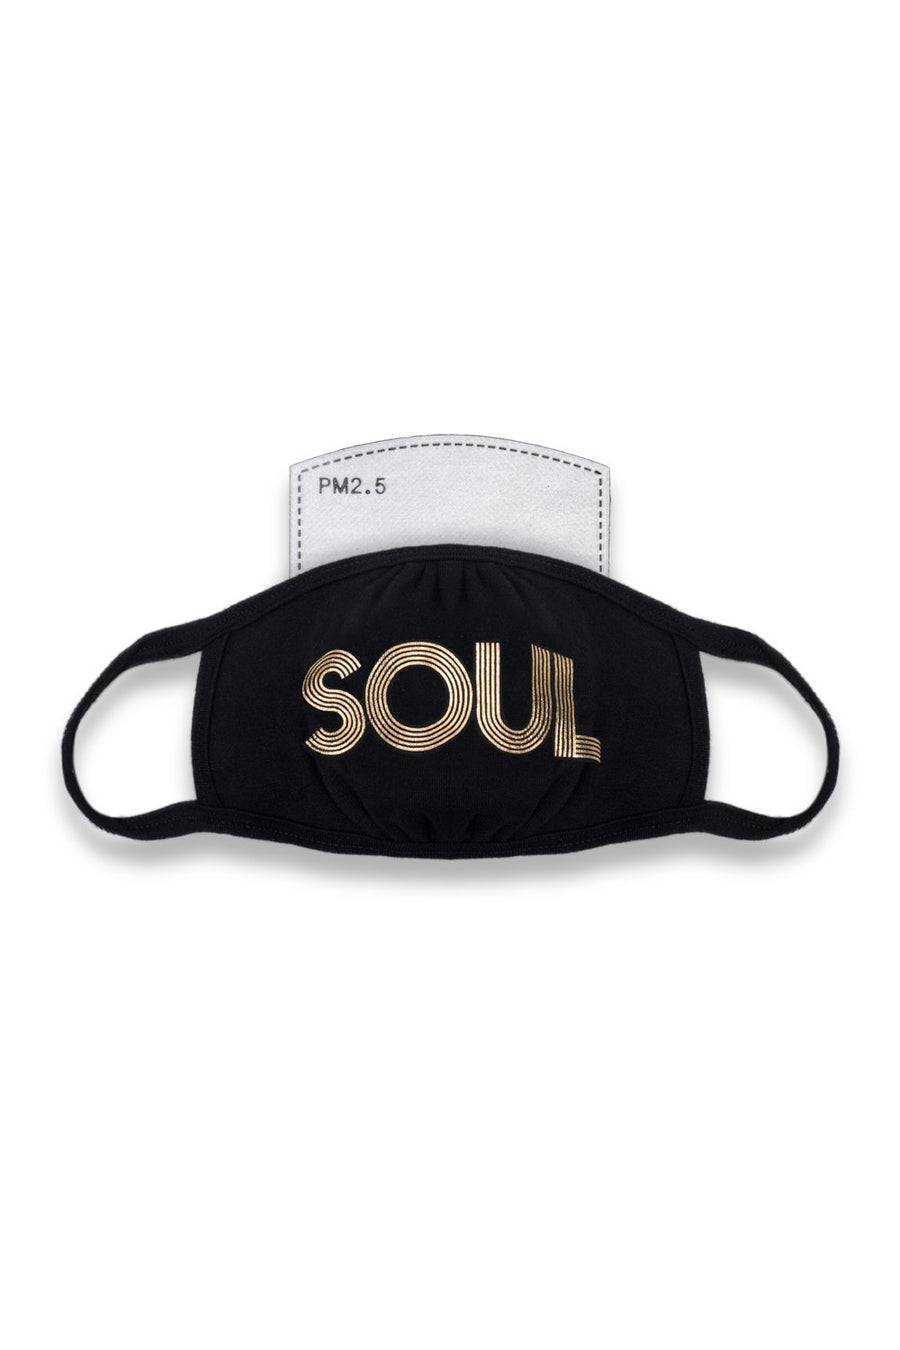 Soul Mask Black/Gold